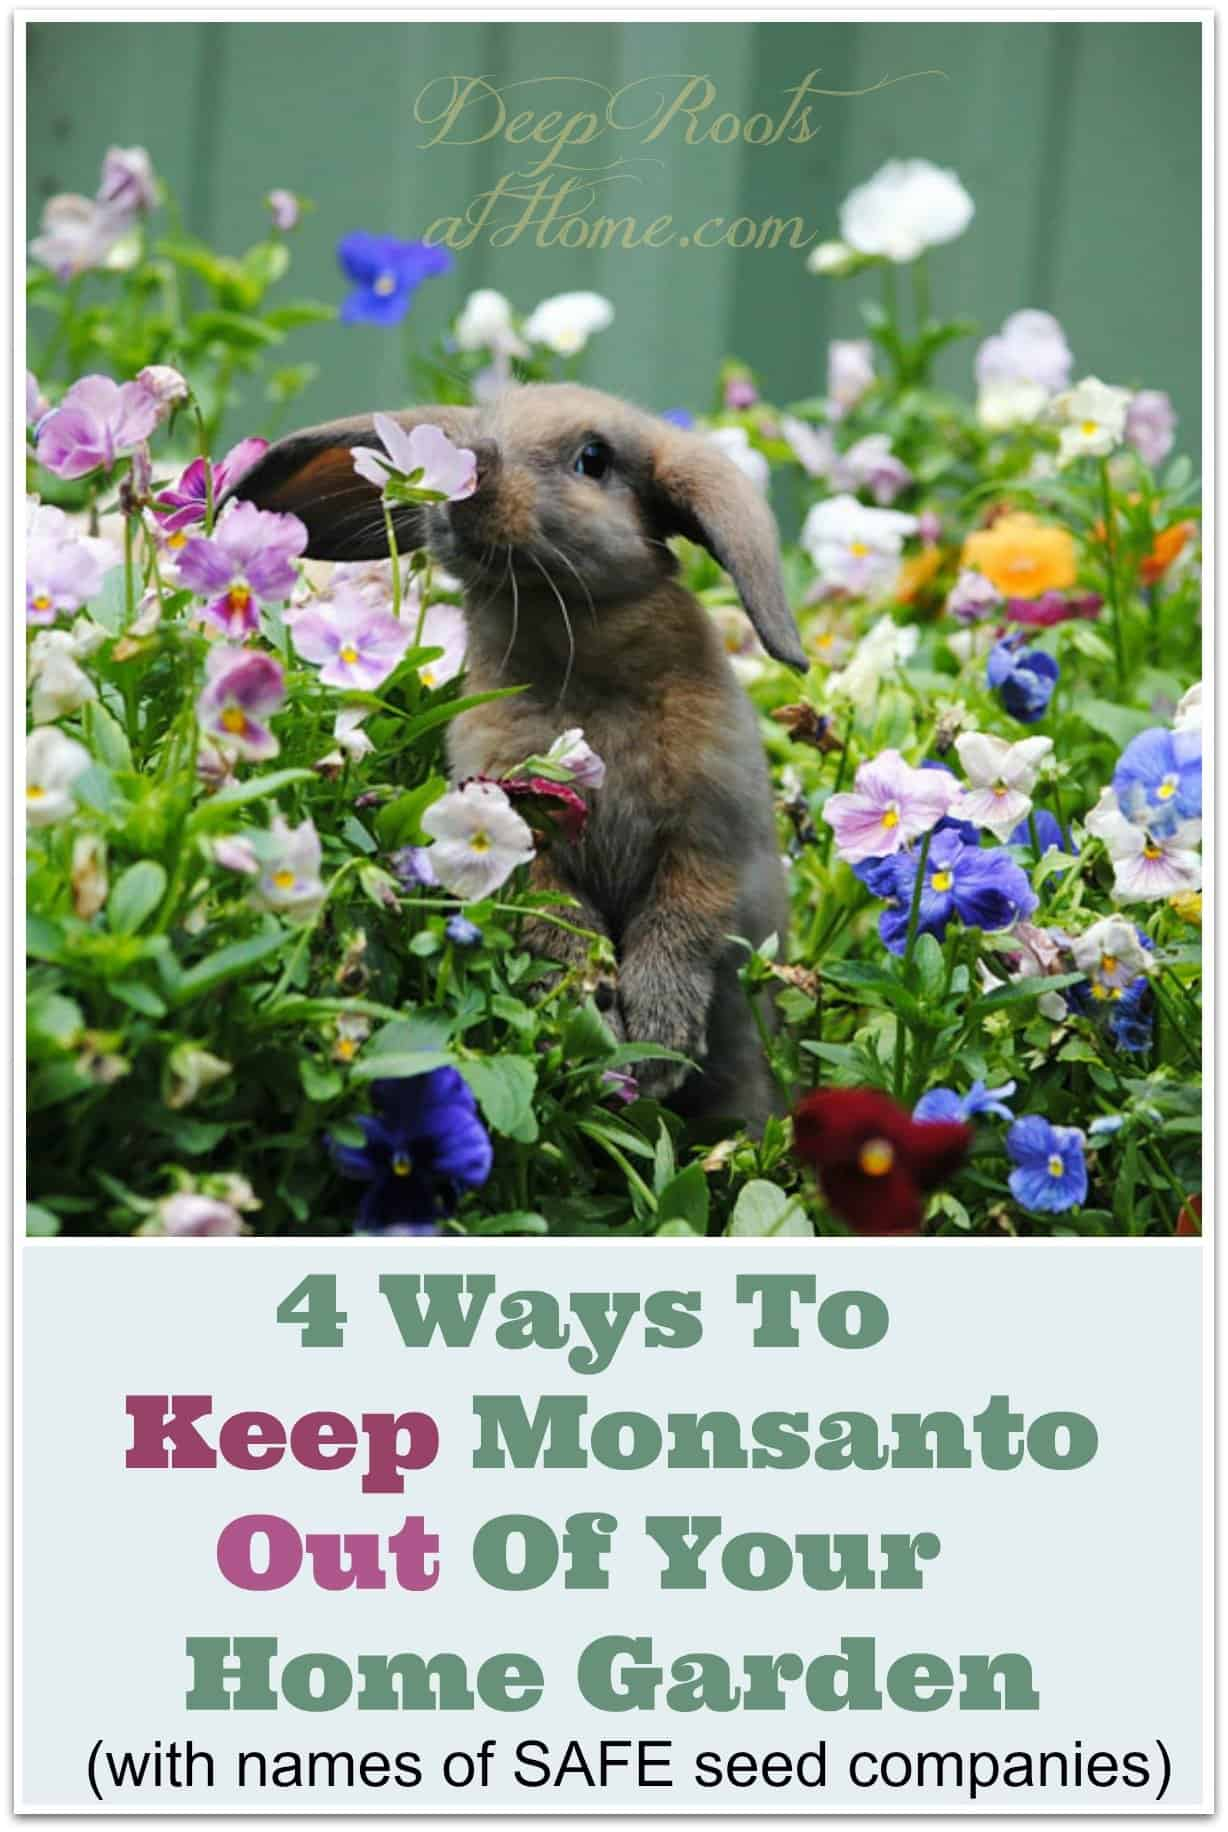 4 Ways To Keep Monsanto Out Of Your Home Garden